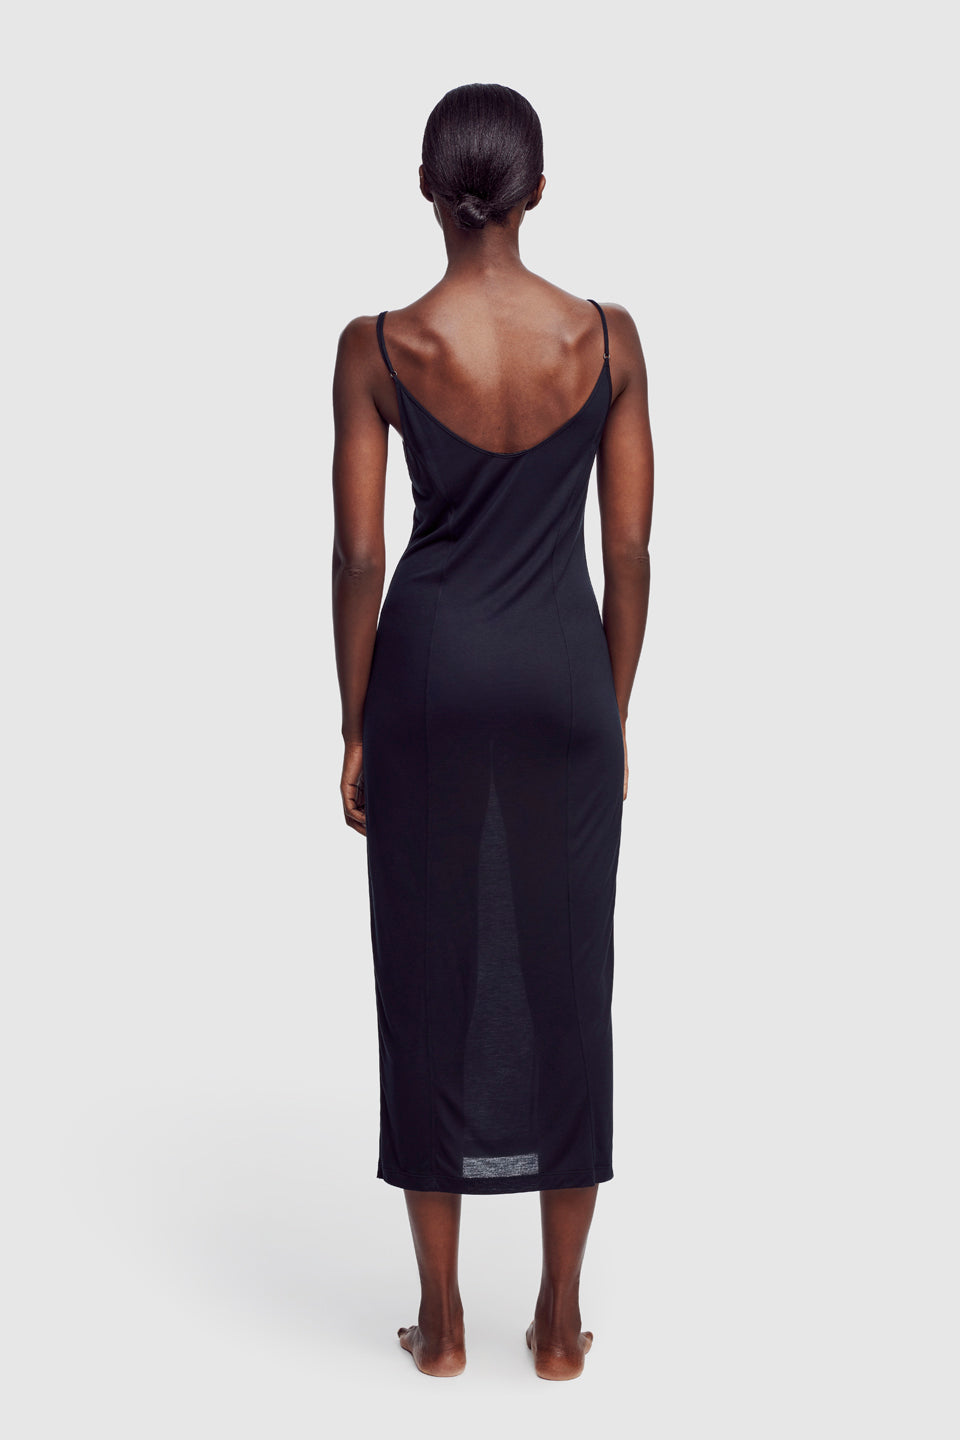 Intime Long Slip Dress Black - Kiki de Montparnasse